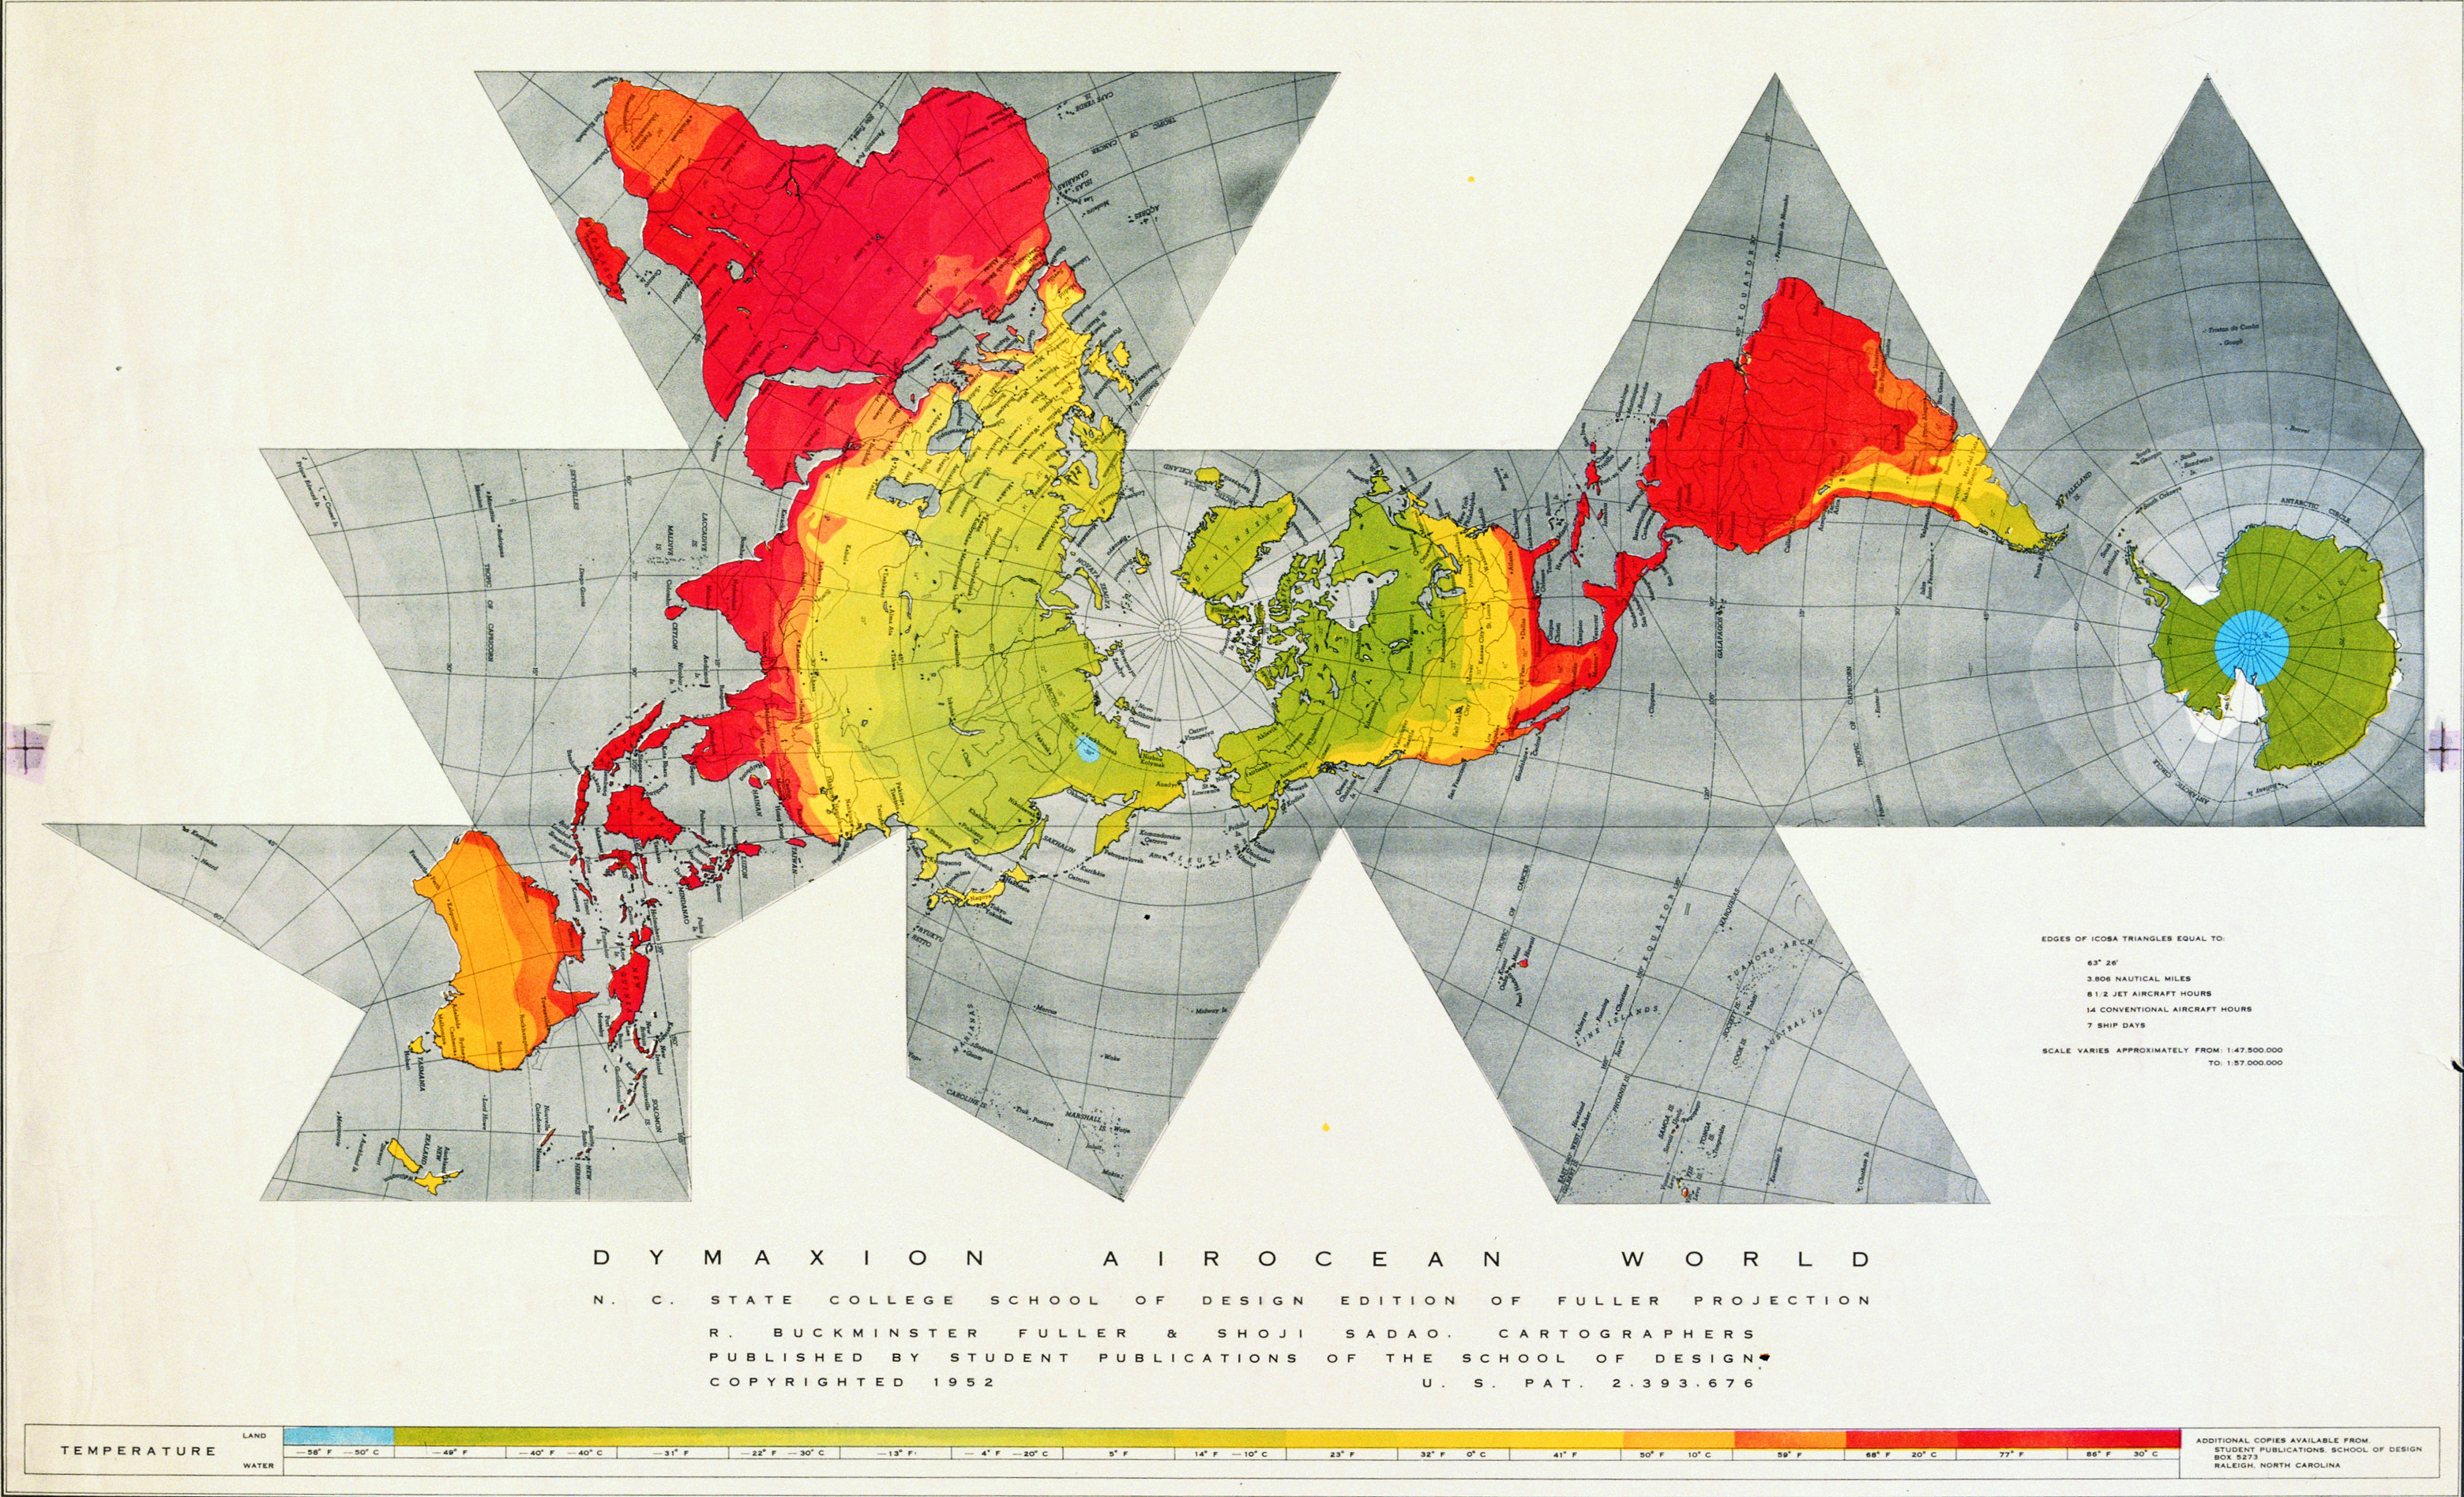 Spaceship earth the world map and what you didnt know dymaxion map created by buckminster fuller accurate in both size and location of all gumiabroncs Gallery